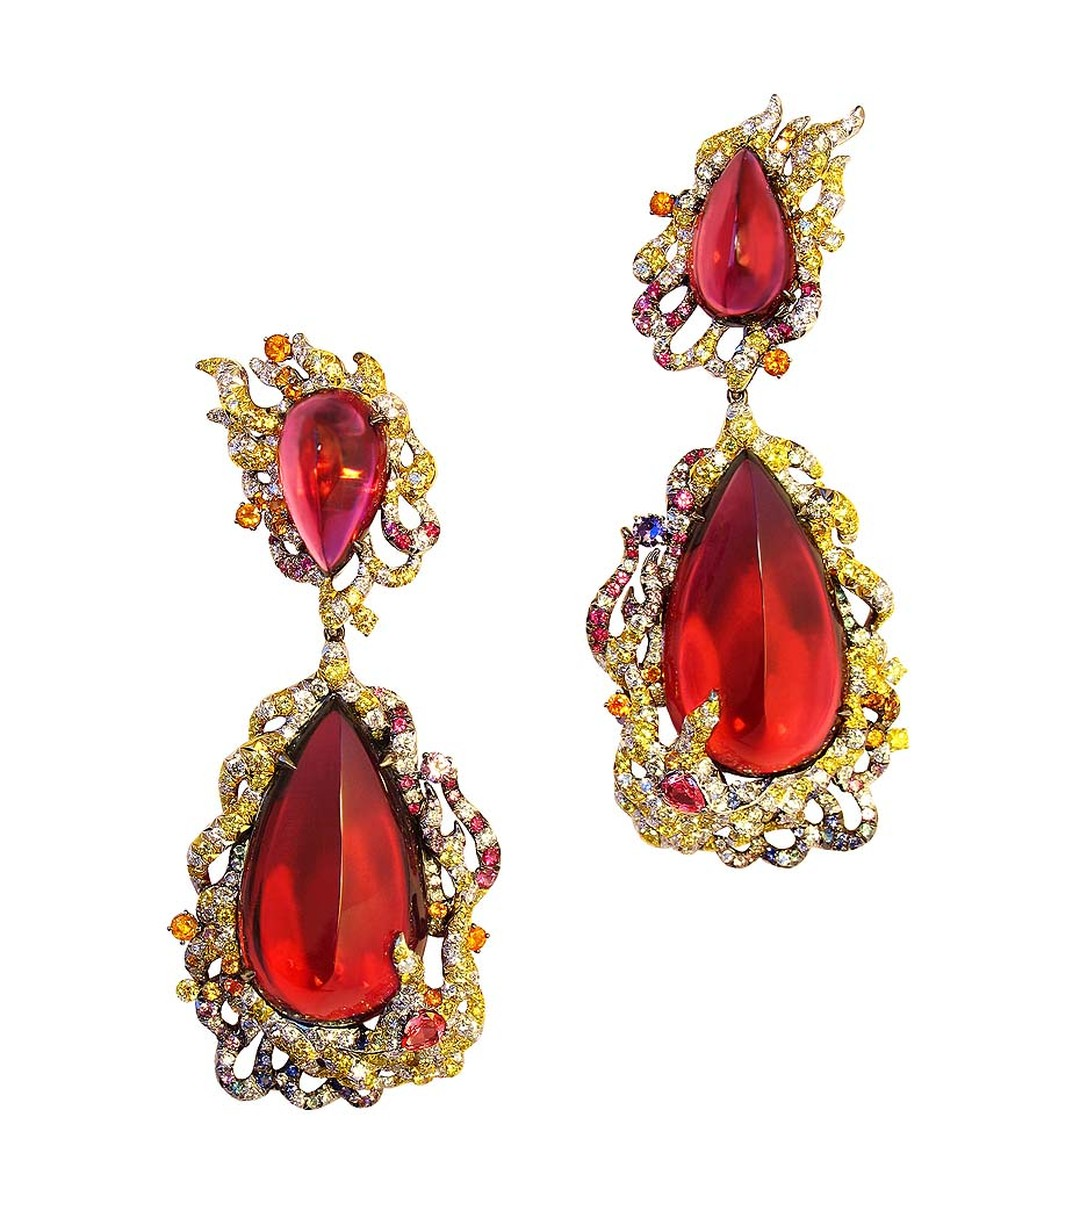 Anna Hu Fire Phoenix fine jewellery earrings in white and yellow gold, set with four rubellites totalling more than 120ct, diamonds, rubies, Paraiba tourmalines and multi-coloured sapphires.